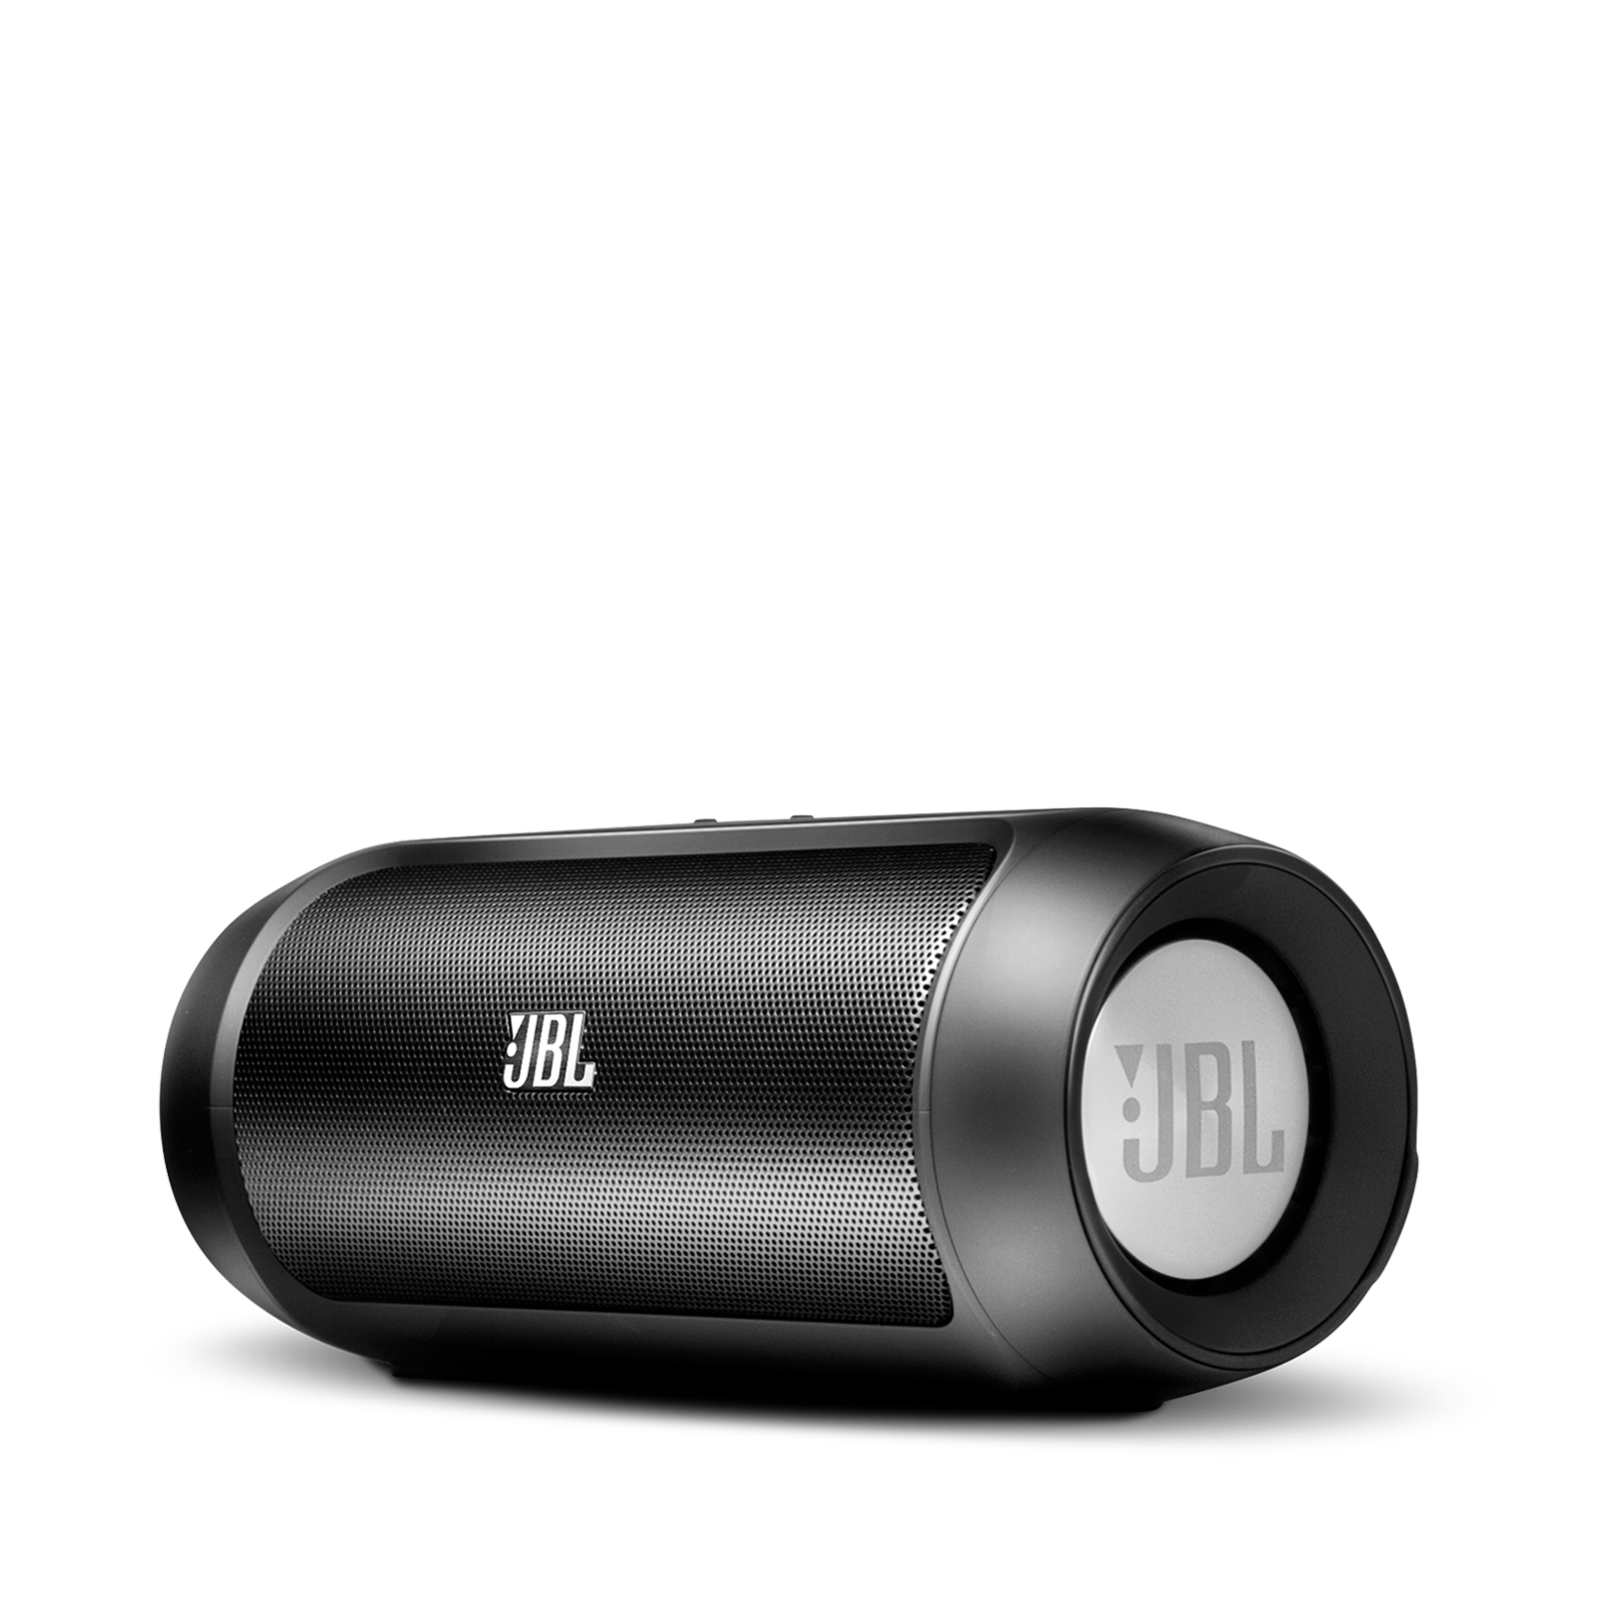 JBL Charge 2 - Black - Portable Bluetooth speaker with massive battery to charge your devices - Hero